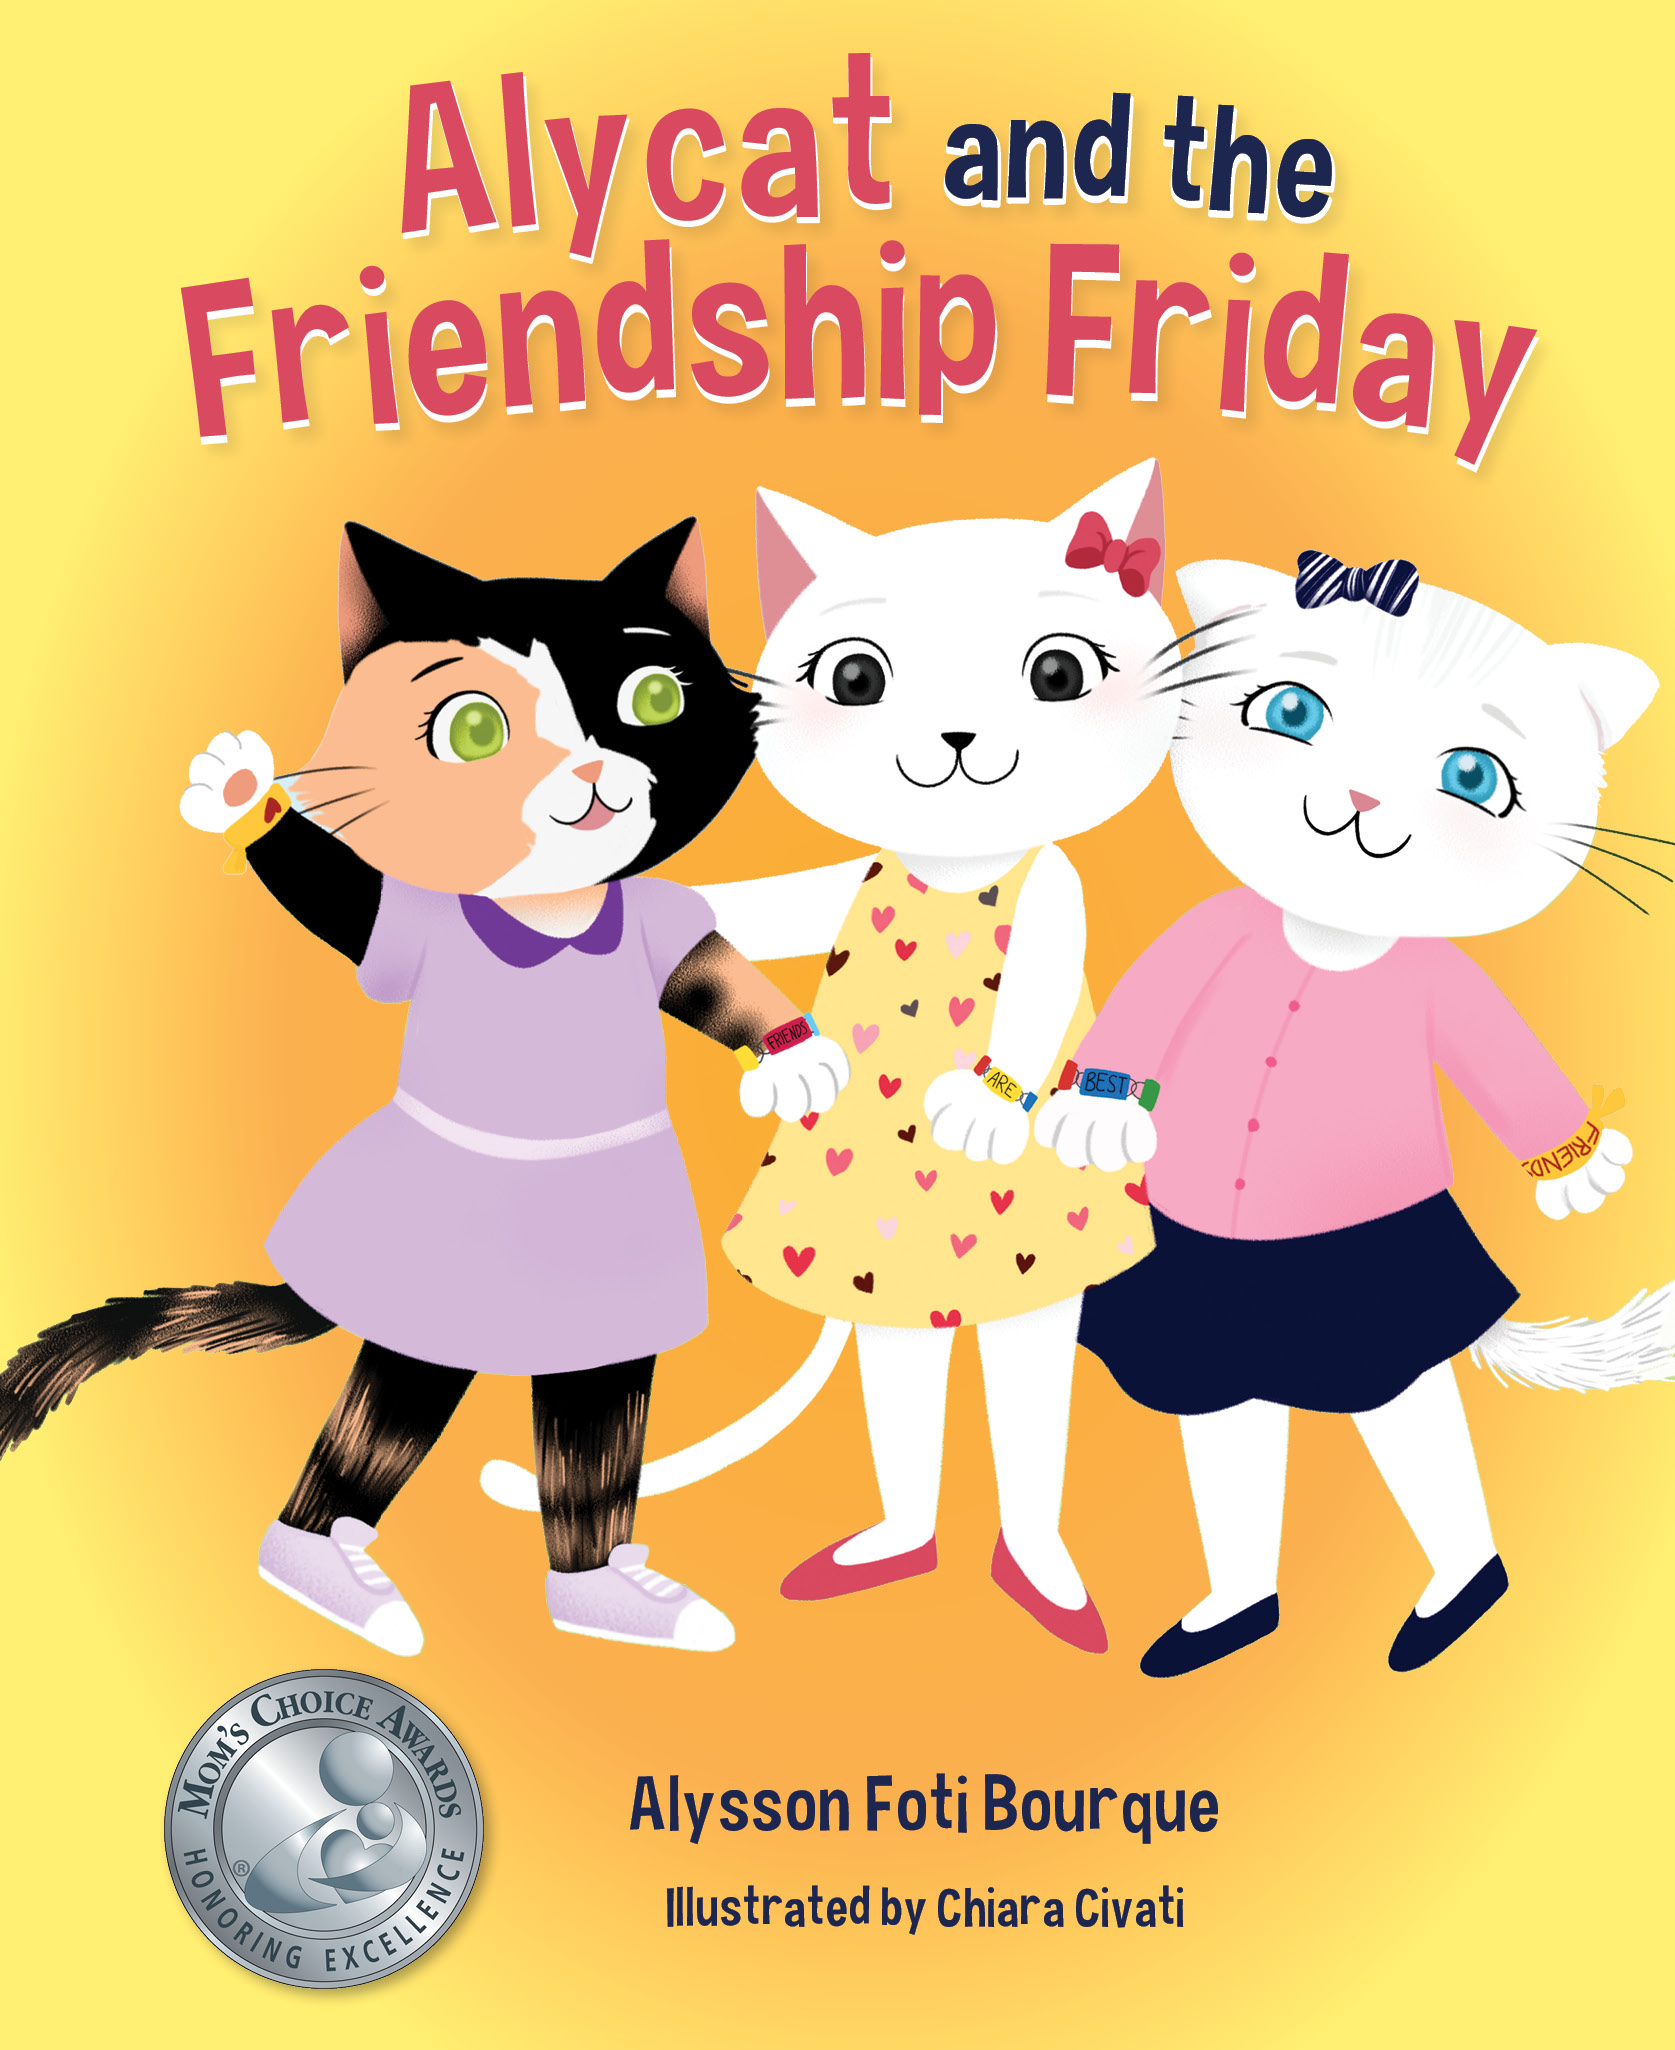 AlycatandtheFriendshipFriday_Amazon